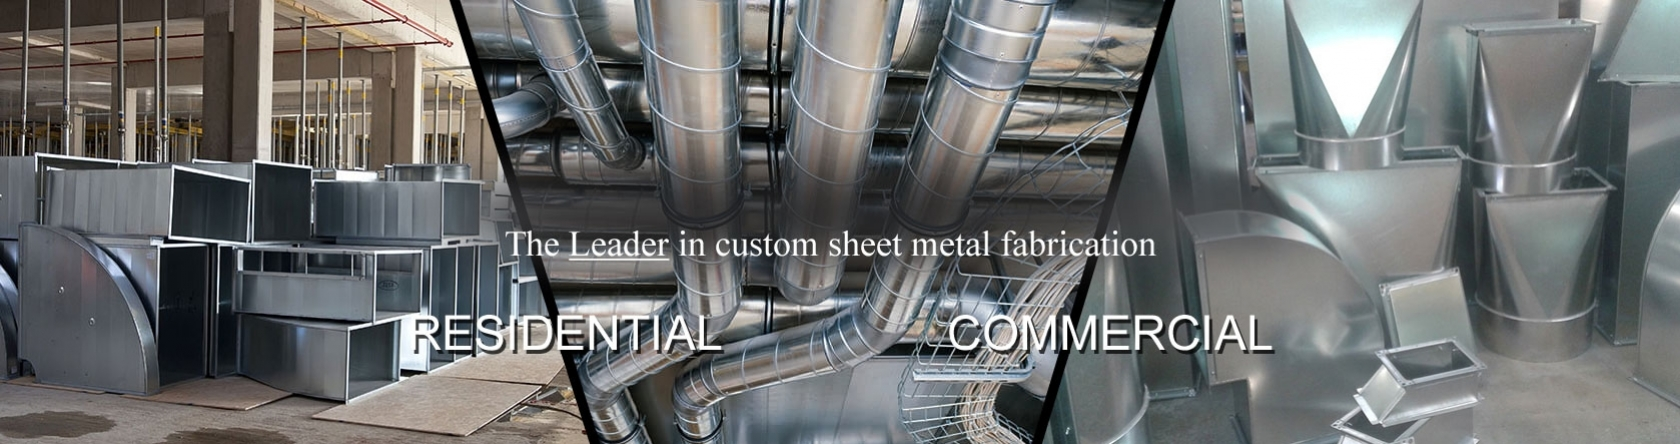 Fennelly's Custom Sheet Metal Ltd.